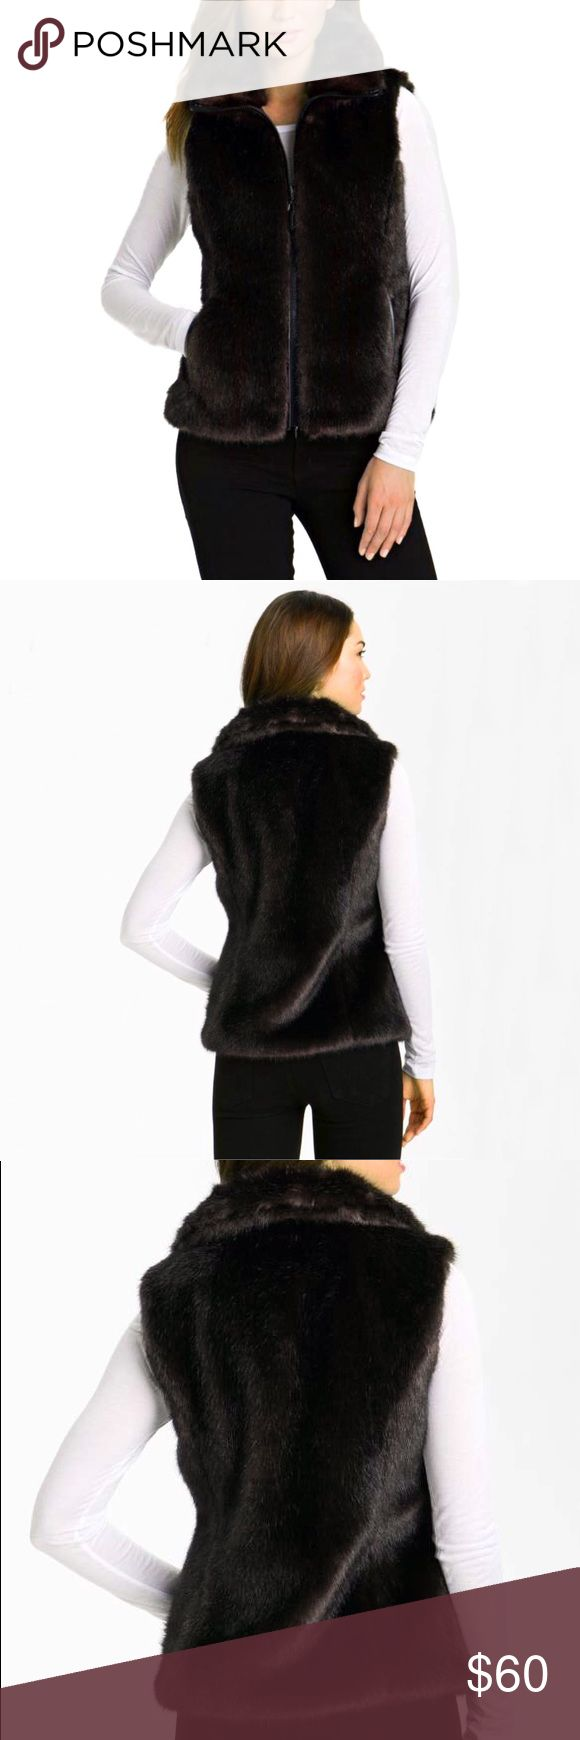 🆕 Reversible Faux Mink Fur Vest 🆕 NWOT • Glossy faux mink fur covers one side a collared vest, while a polyester shell defines the reverse side. Faux leather piping trims the zippered placket on the faux fur side. Both sides have pockets. The faux fur collar is visible on the reverse side. Collar stands high when zipped all the way. 🔹Style tags: Glossy, luxurious, stylish, cozy, deep chocolate color. Gallery Jackets & Coats Vests